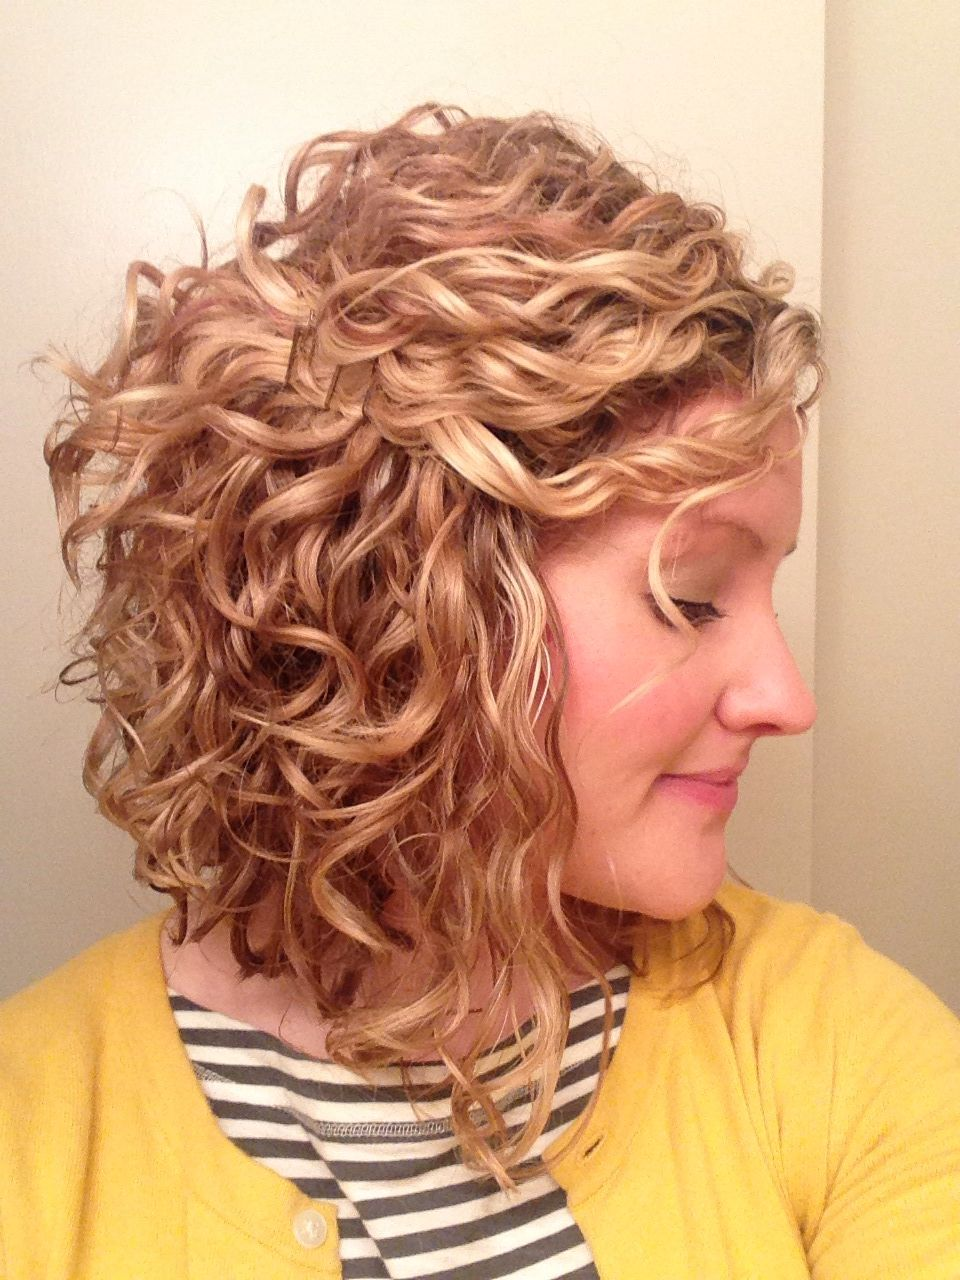 Pin By Tammy Smith On Hairstyles Hair Styles Curly Hair Styles Short Curly Haircuts